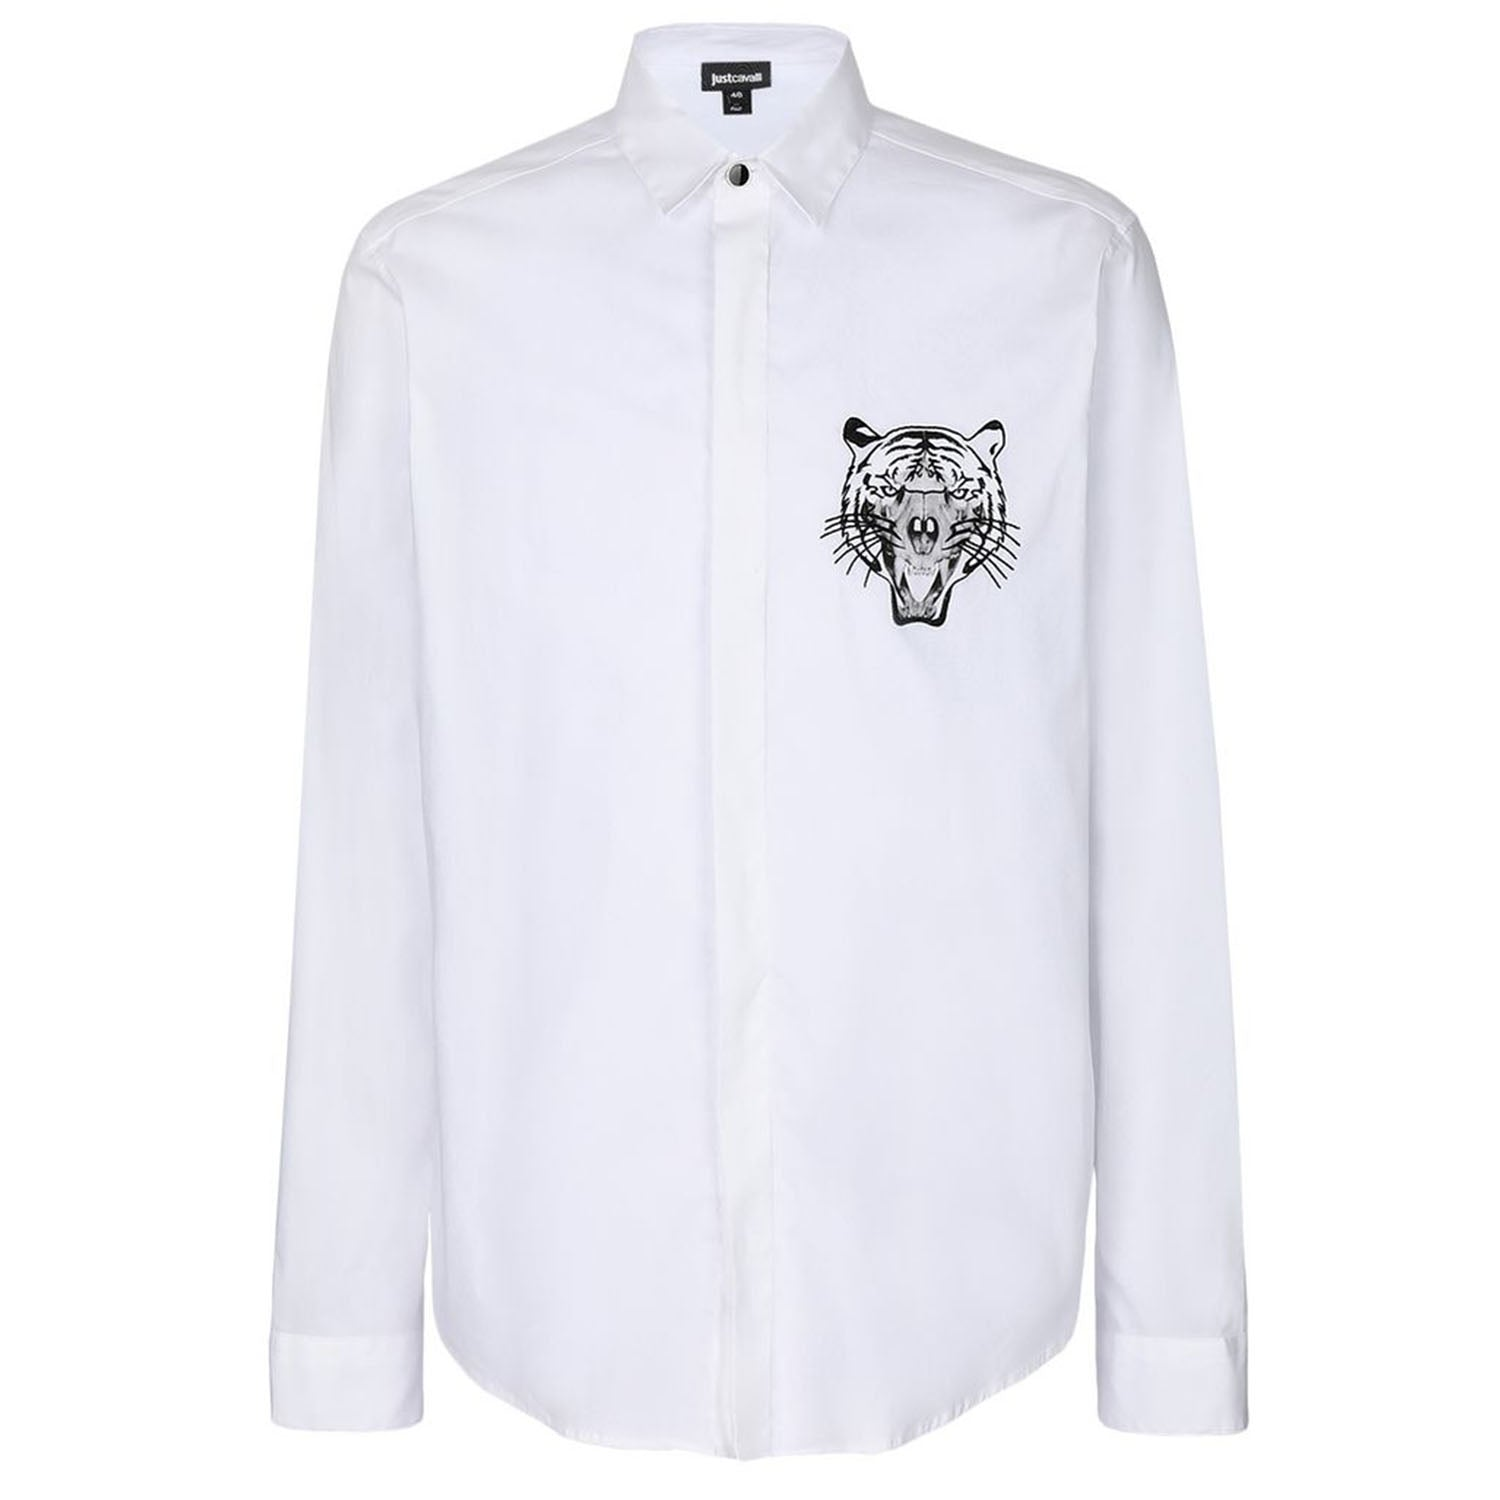 Just Cavalli Embroidered Tiger Print Shirt